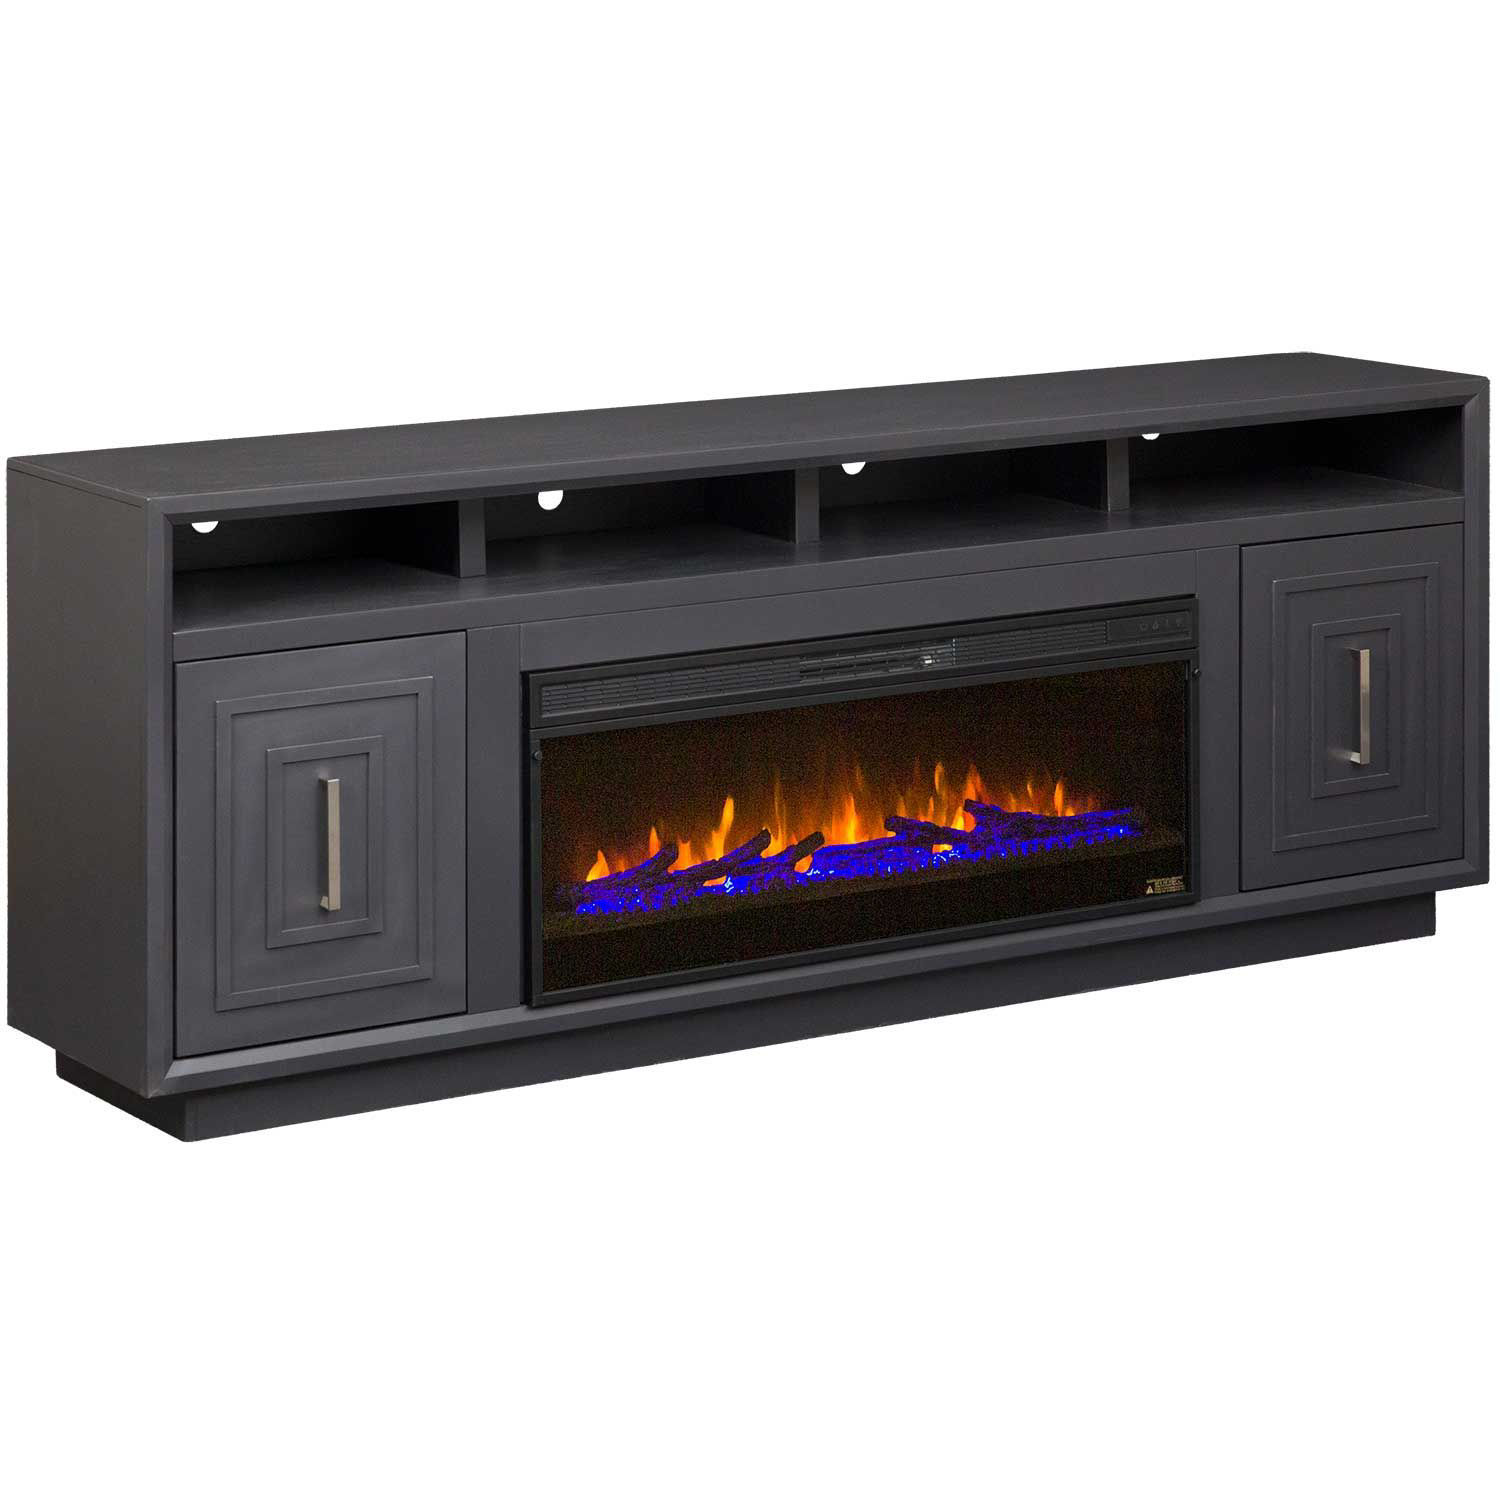 "Picture of Sunset 83"" Fireplace Console"